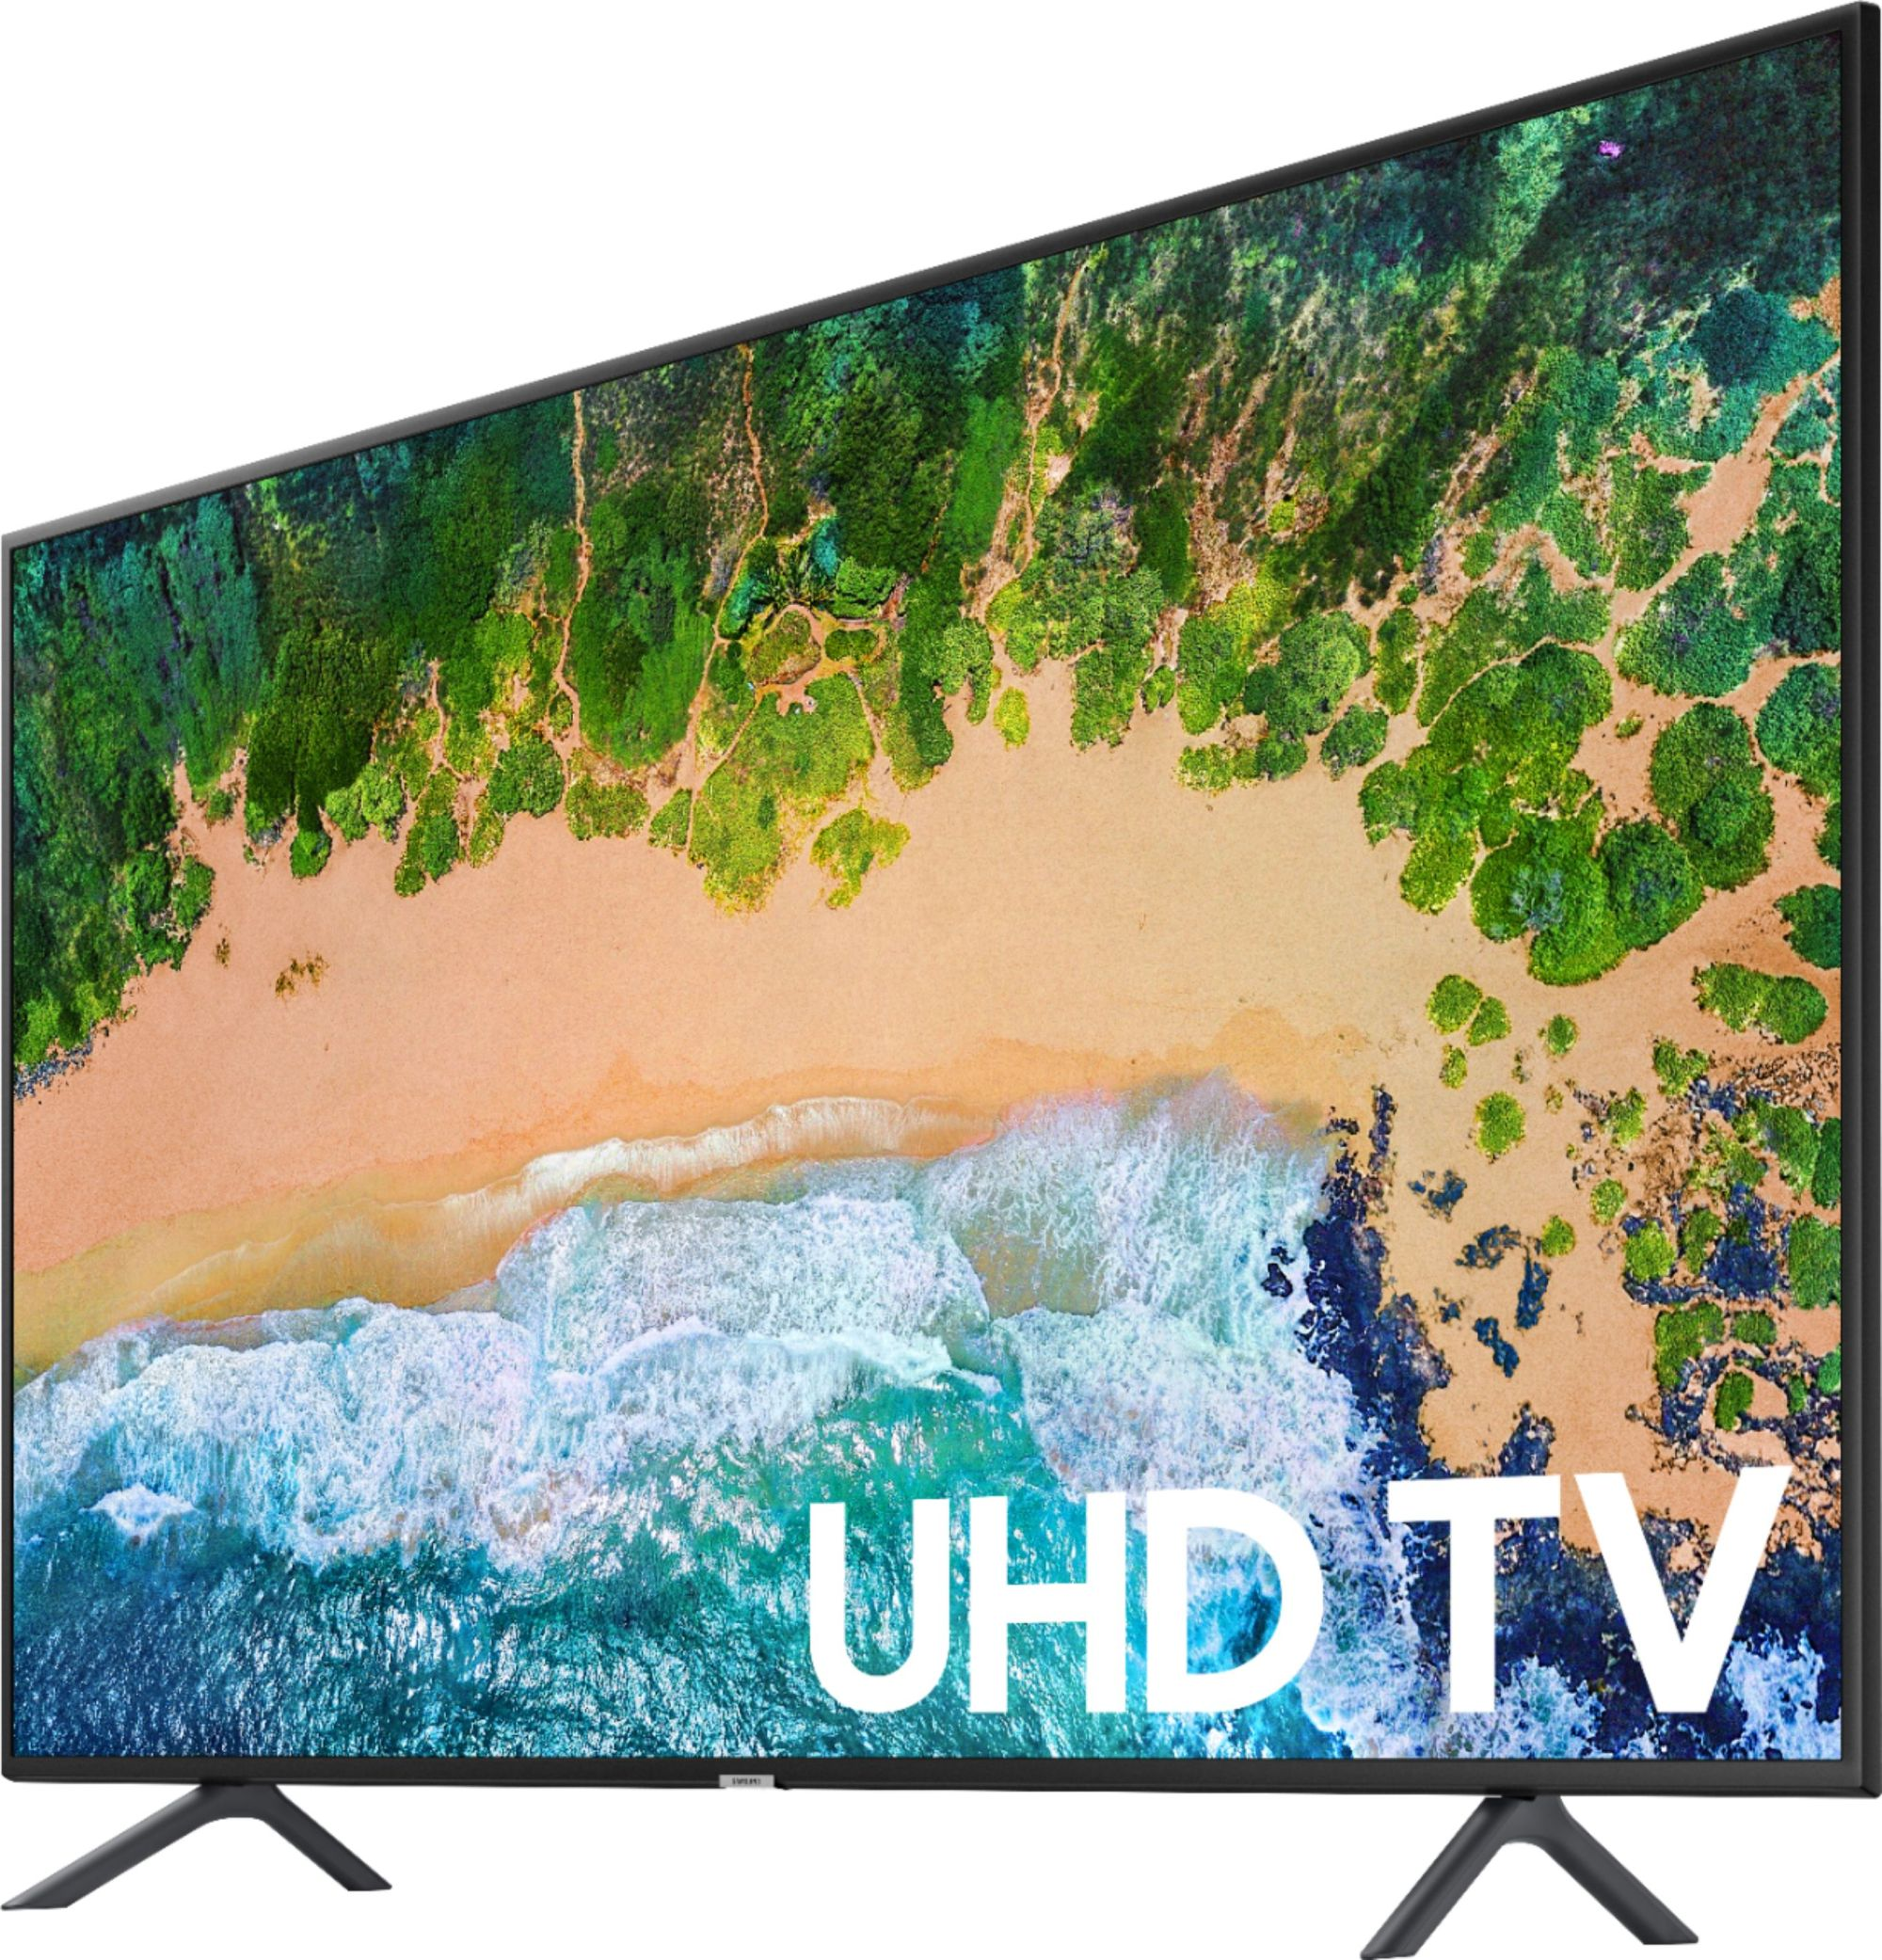 hight resolution of samsung 65 class led nu7100 series 2160p smart 4k uhd tv with hdr black un65nu7100fxza best buy